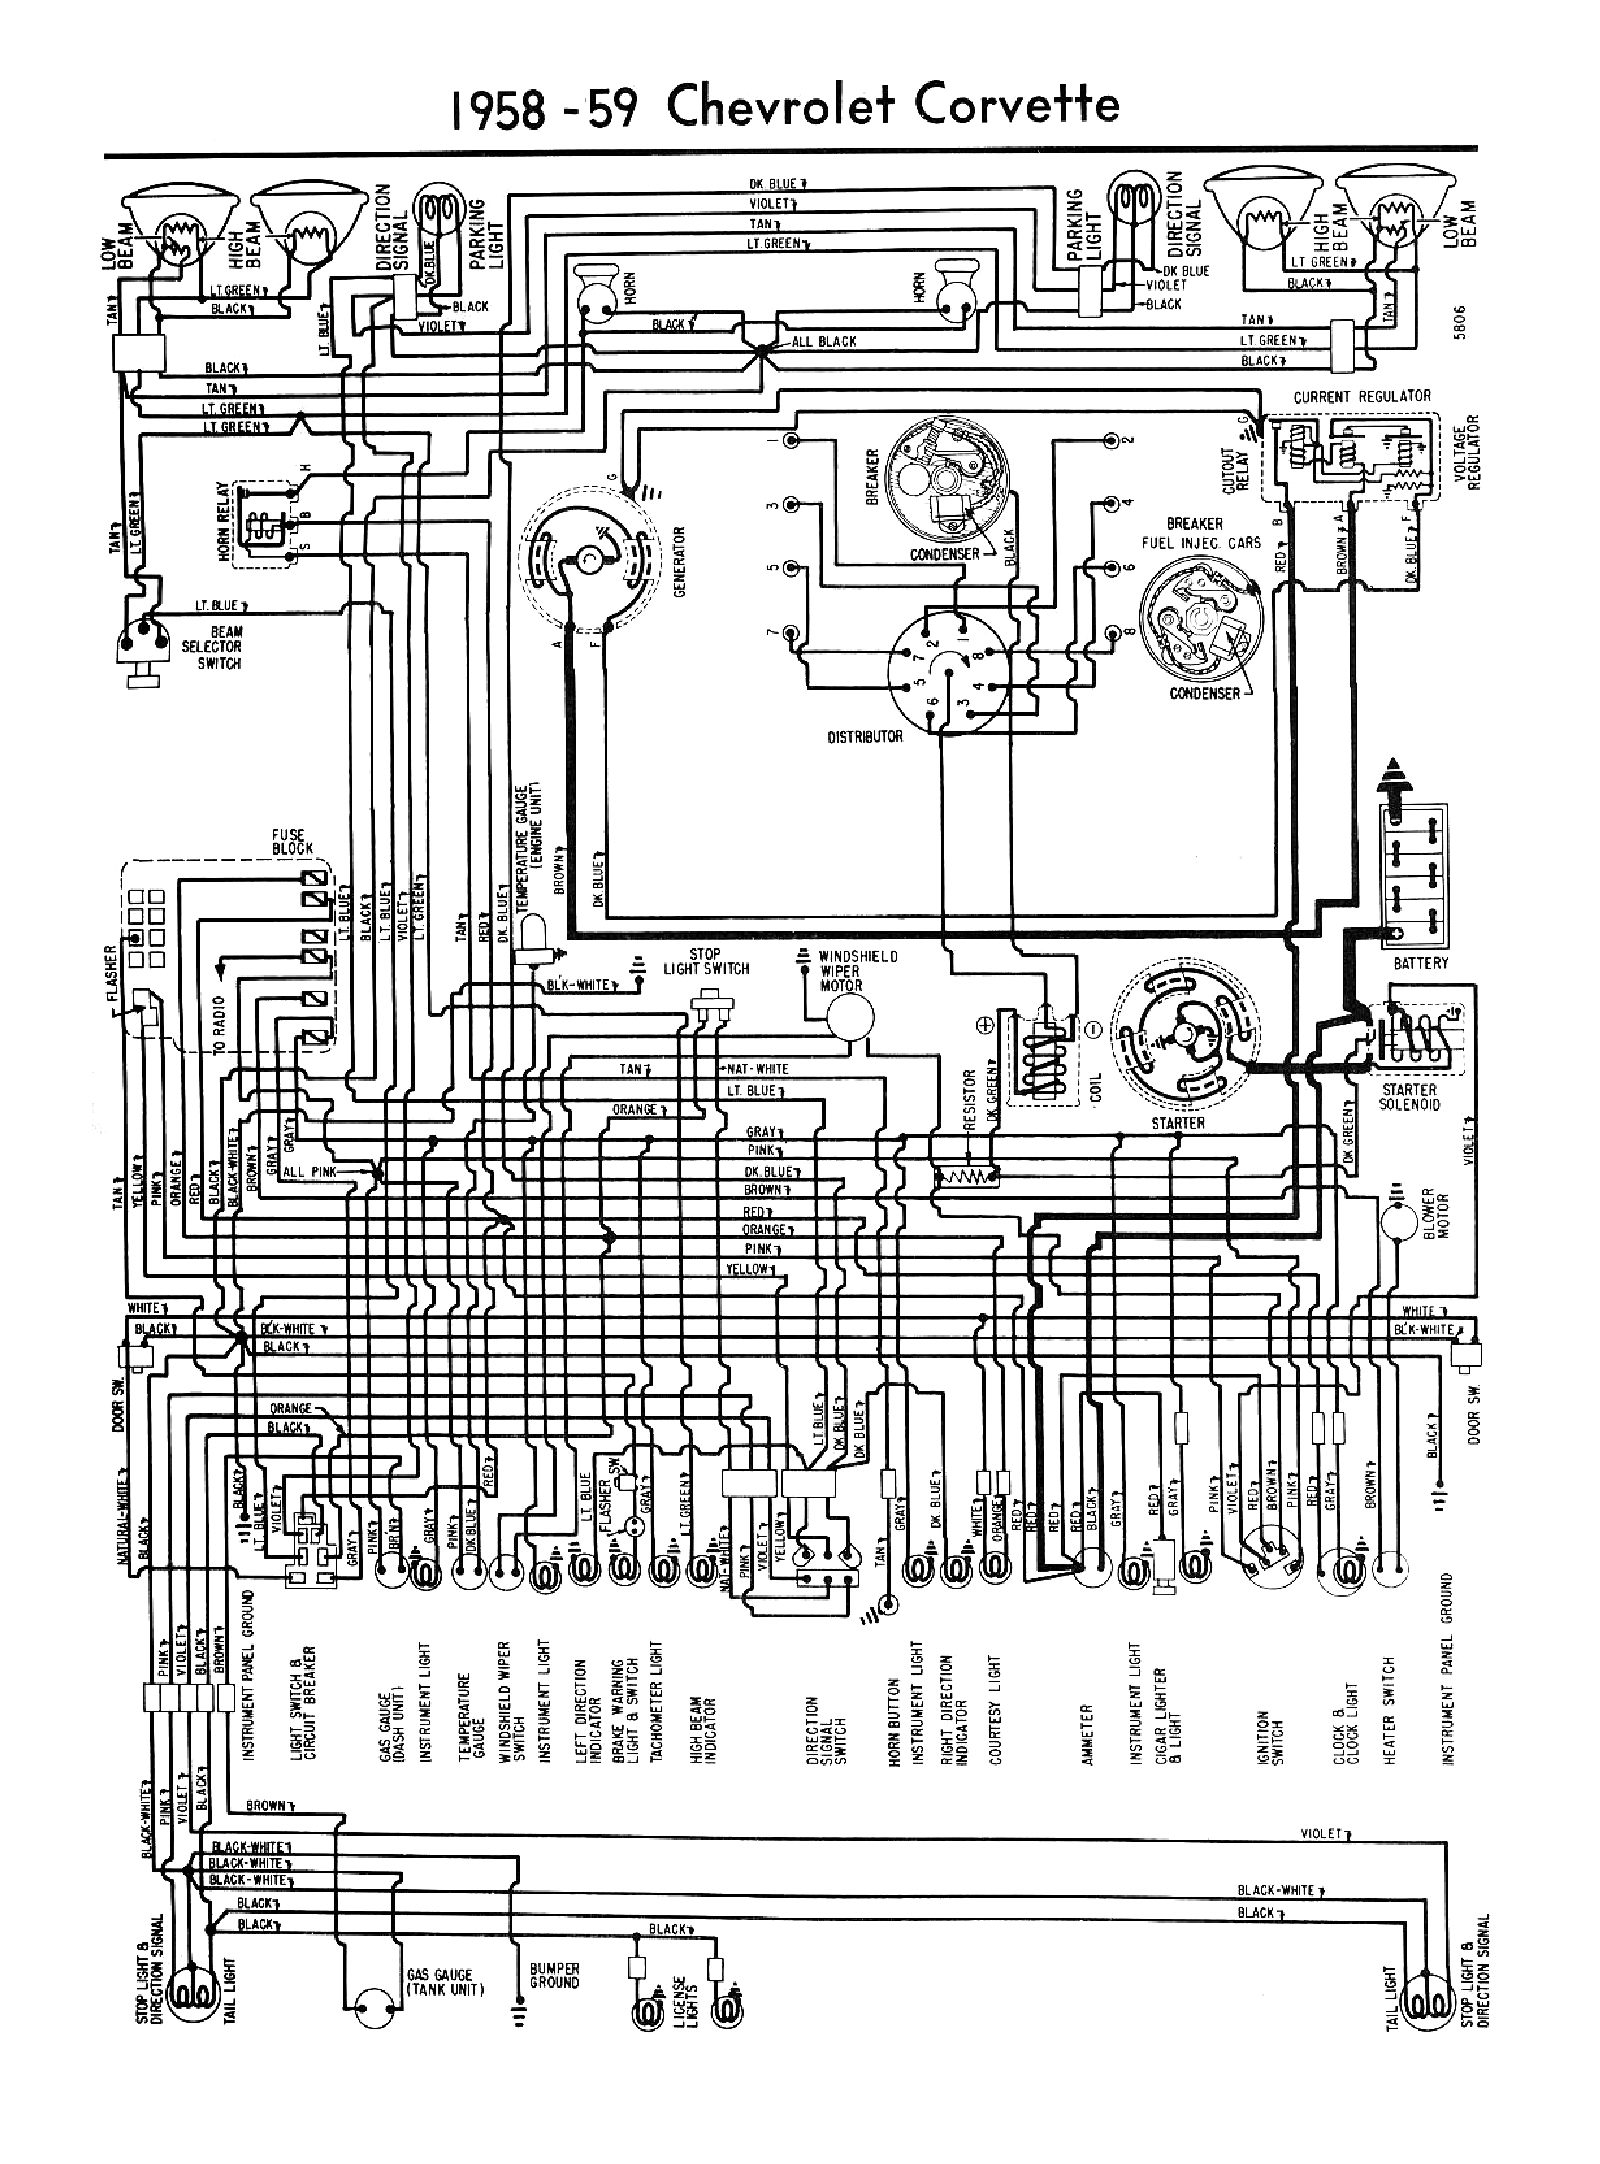 1972 Chevy Truck Wiring Diagram Pdf Simple Wiring Diagram 1964 Chevy Pickup Wiring  Diagram 1959 Chevy Pickup Wiring Diagram